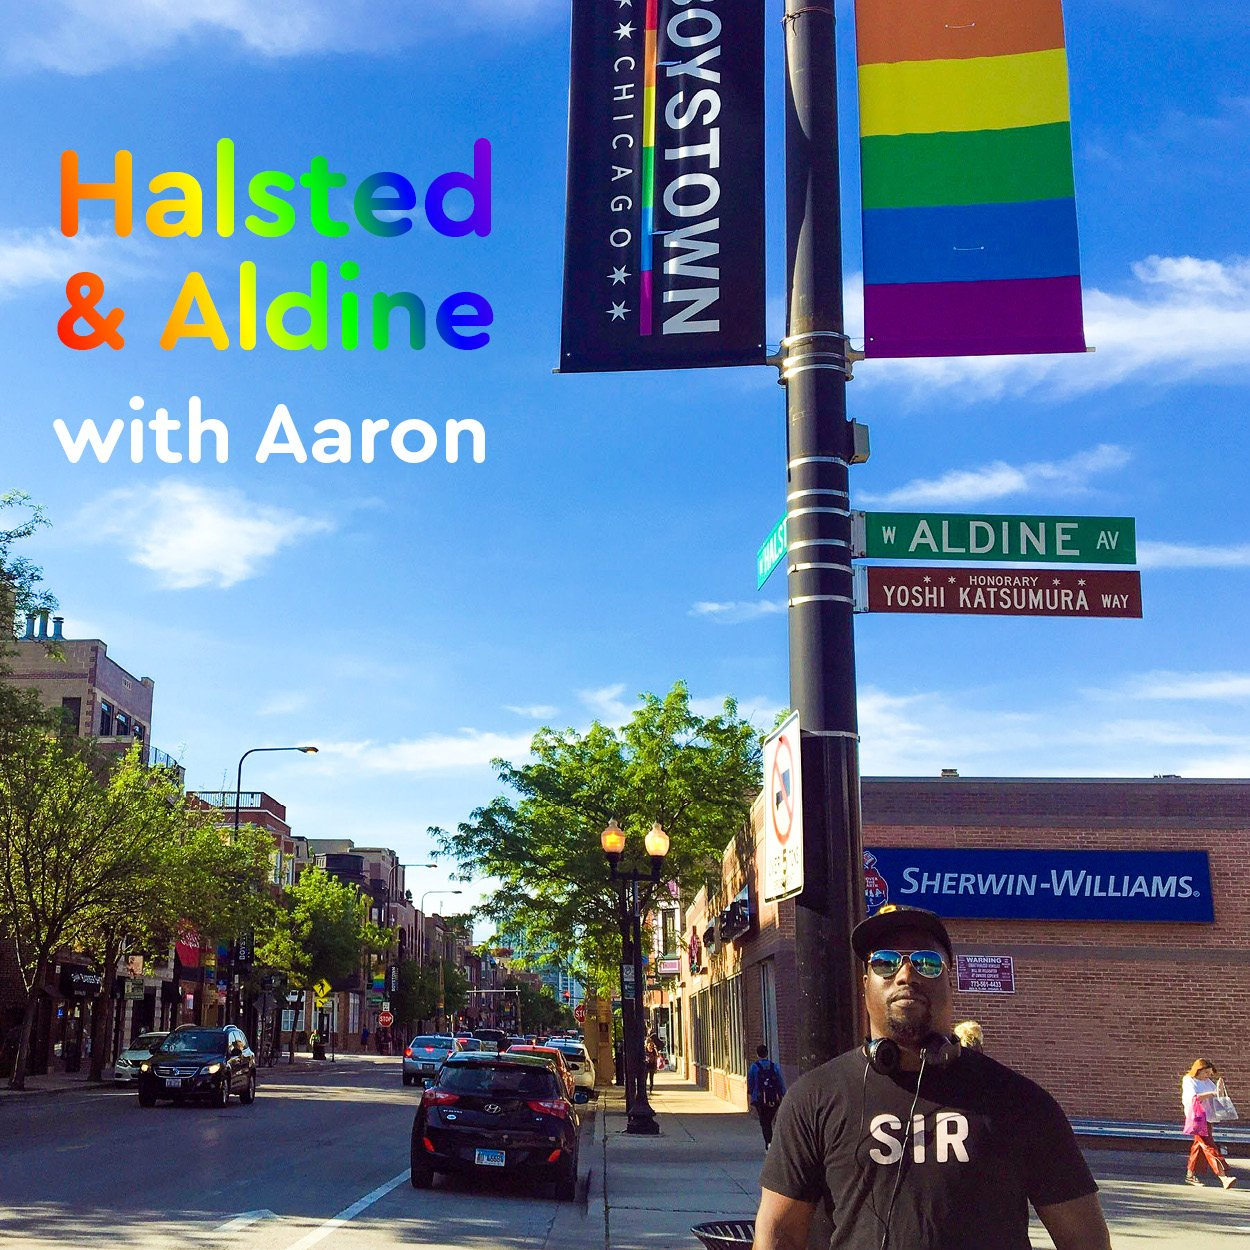 Aaron at Aldine & Halsted